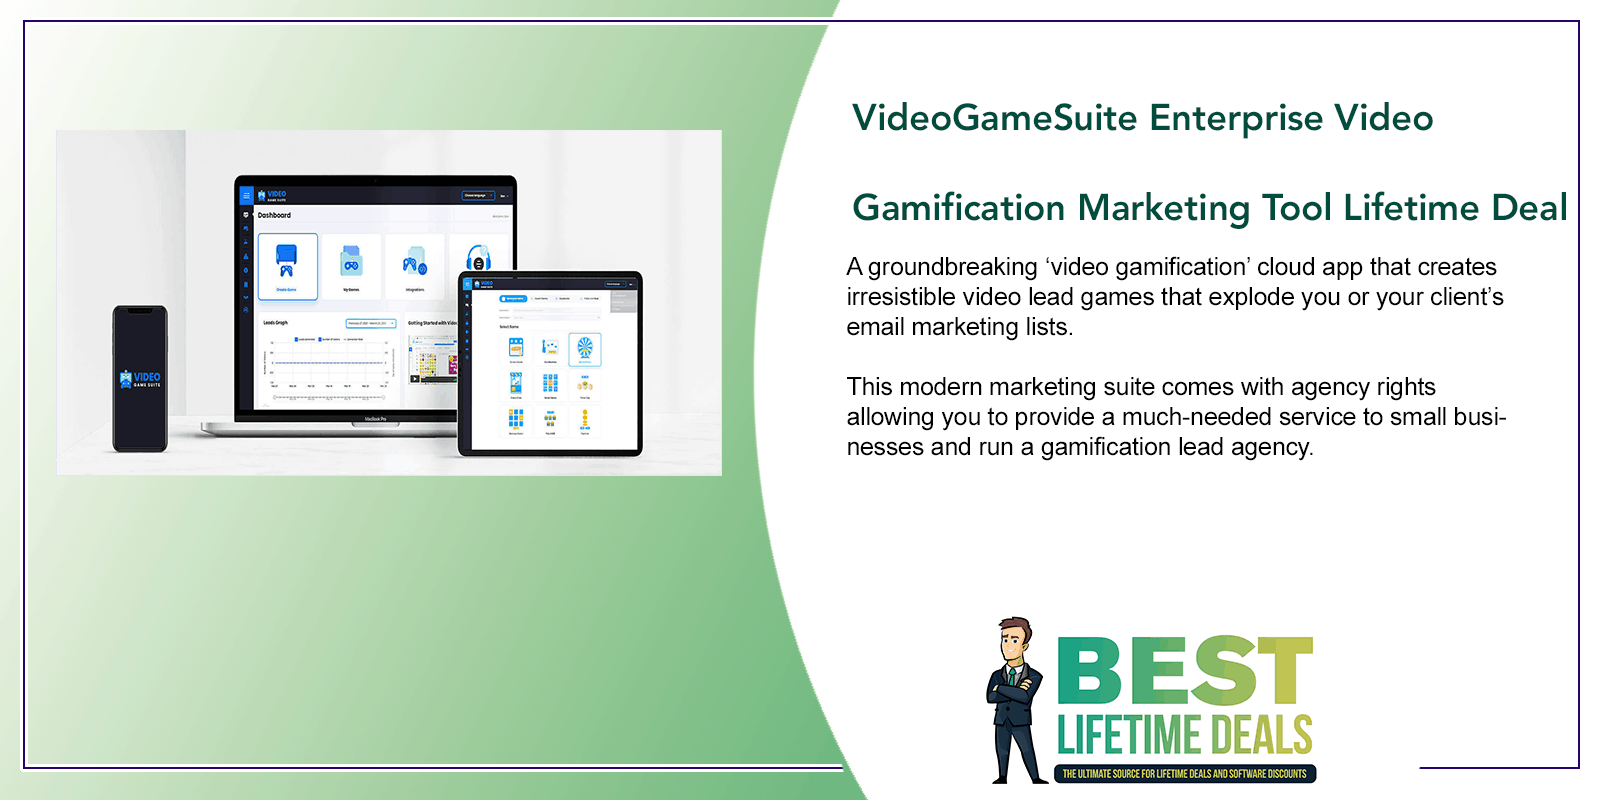 VideoGameSuite Enterprise Video Gamification Marketing Tool Featured Image